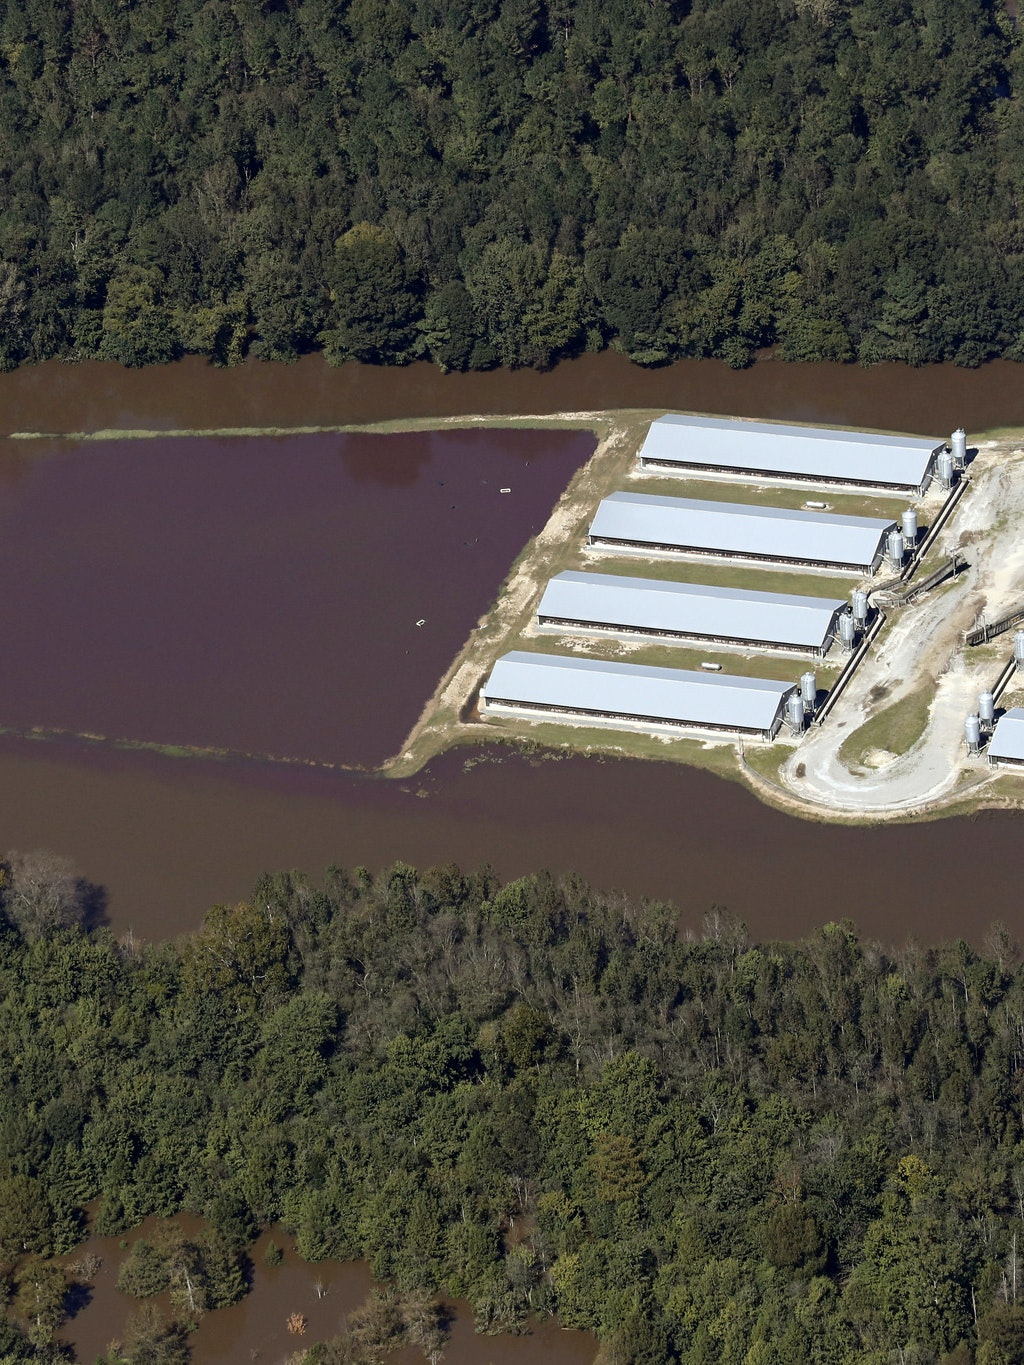 Hog sewage lagoon Hurricane Matthew flooding North Carolina